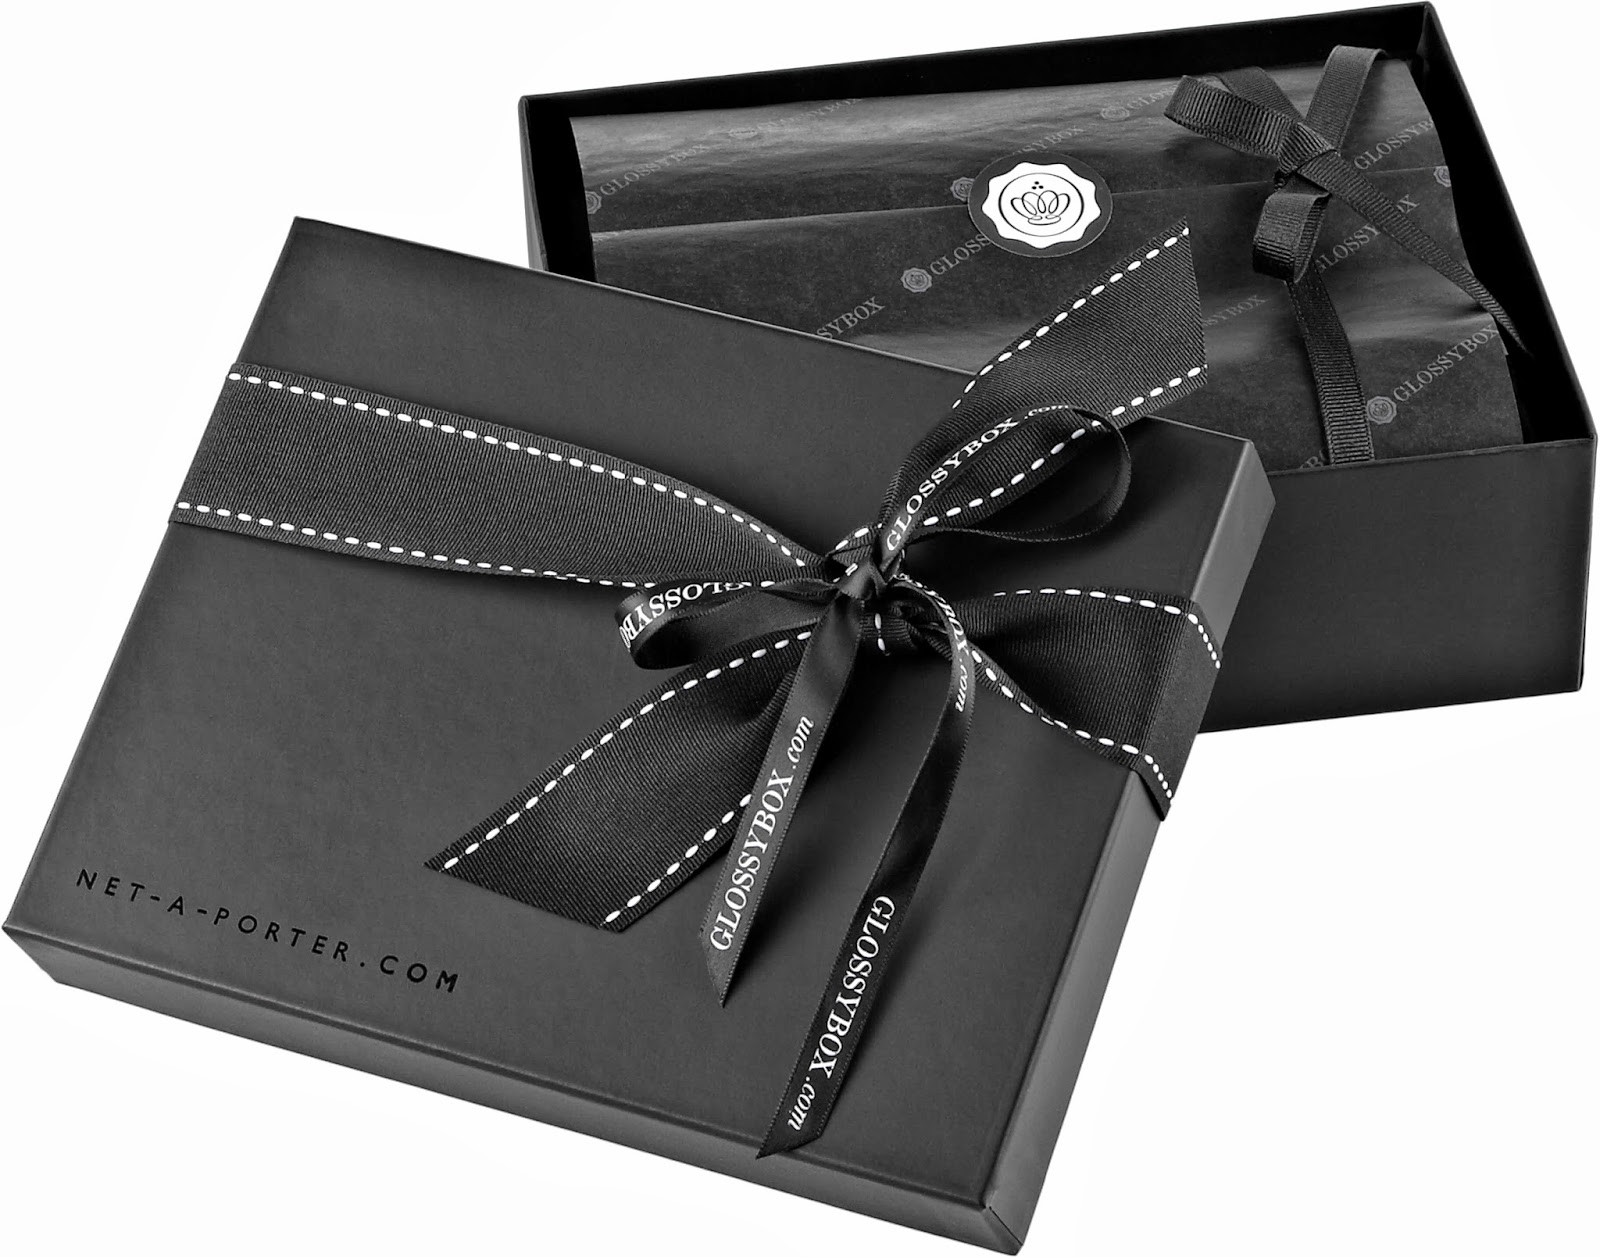 Exclusive net a porter x glossybox chloepierreldn for Net a porter